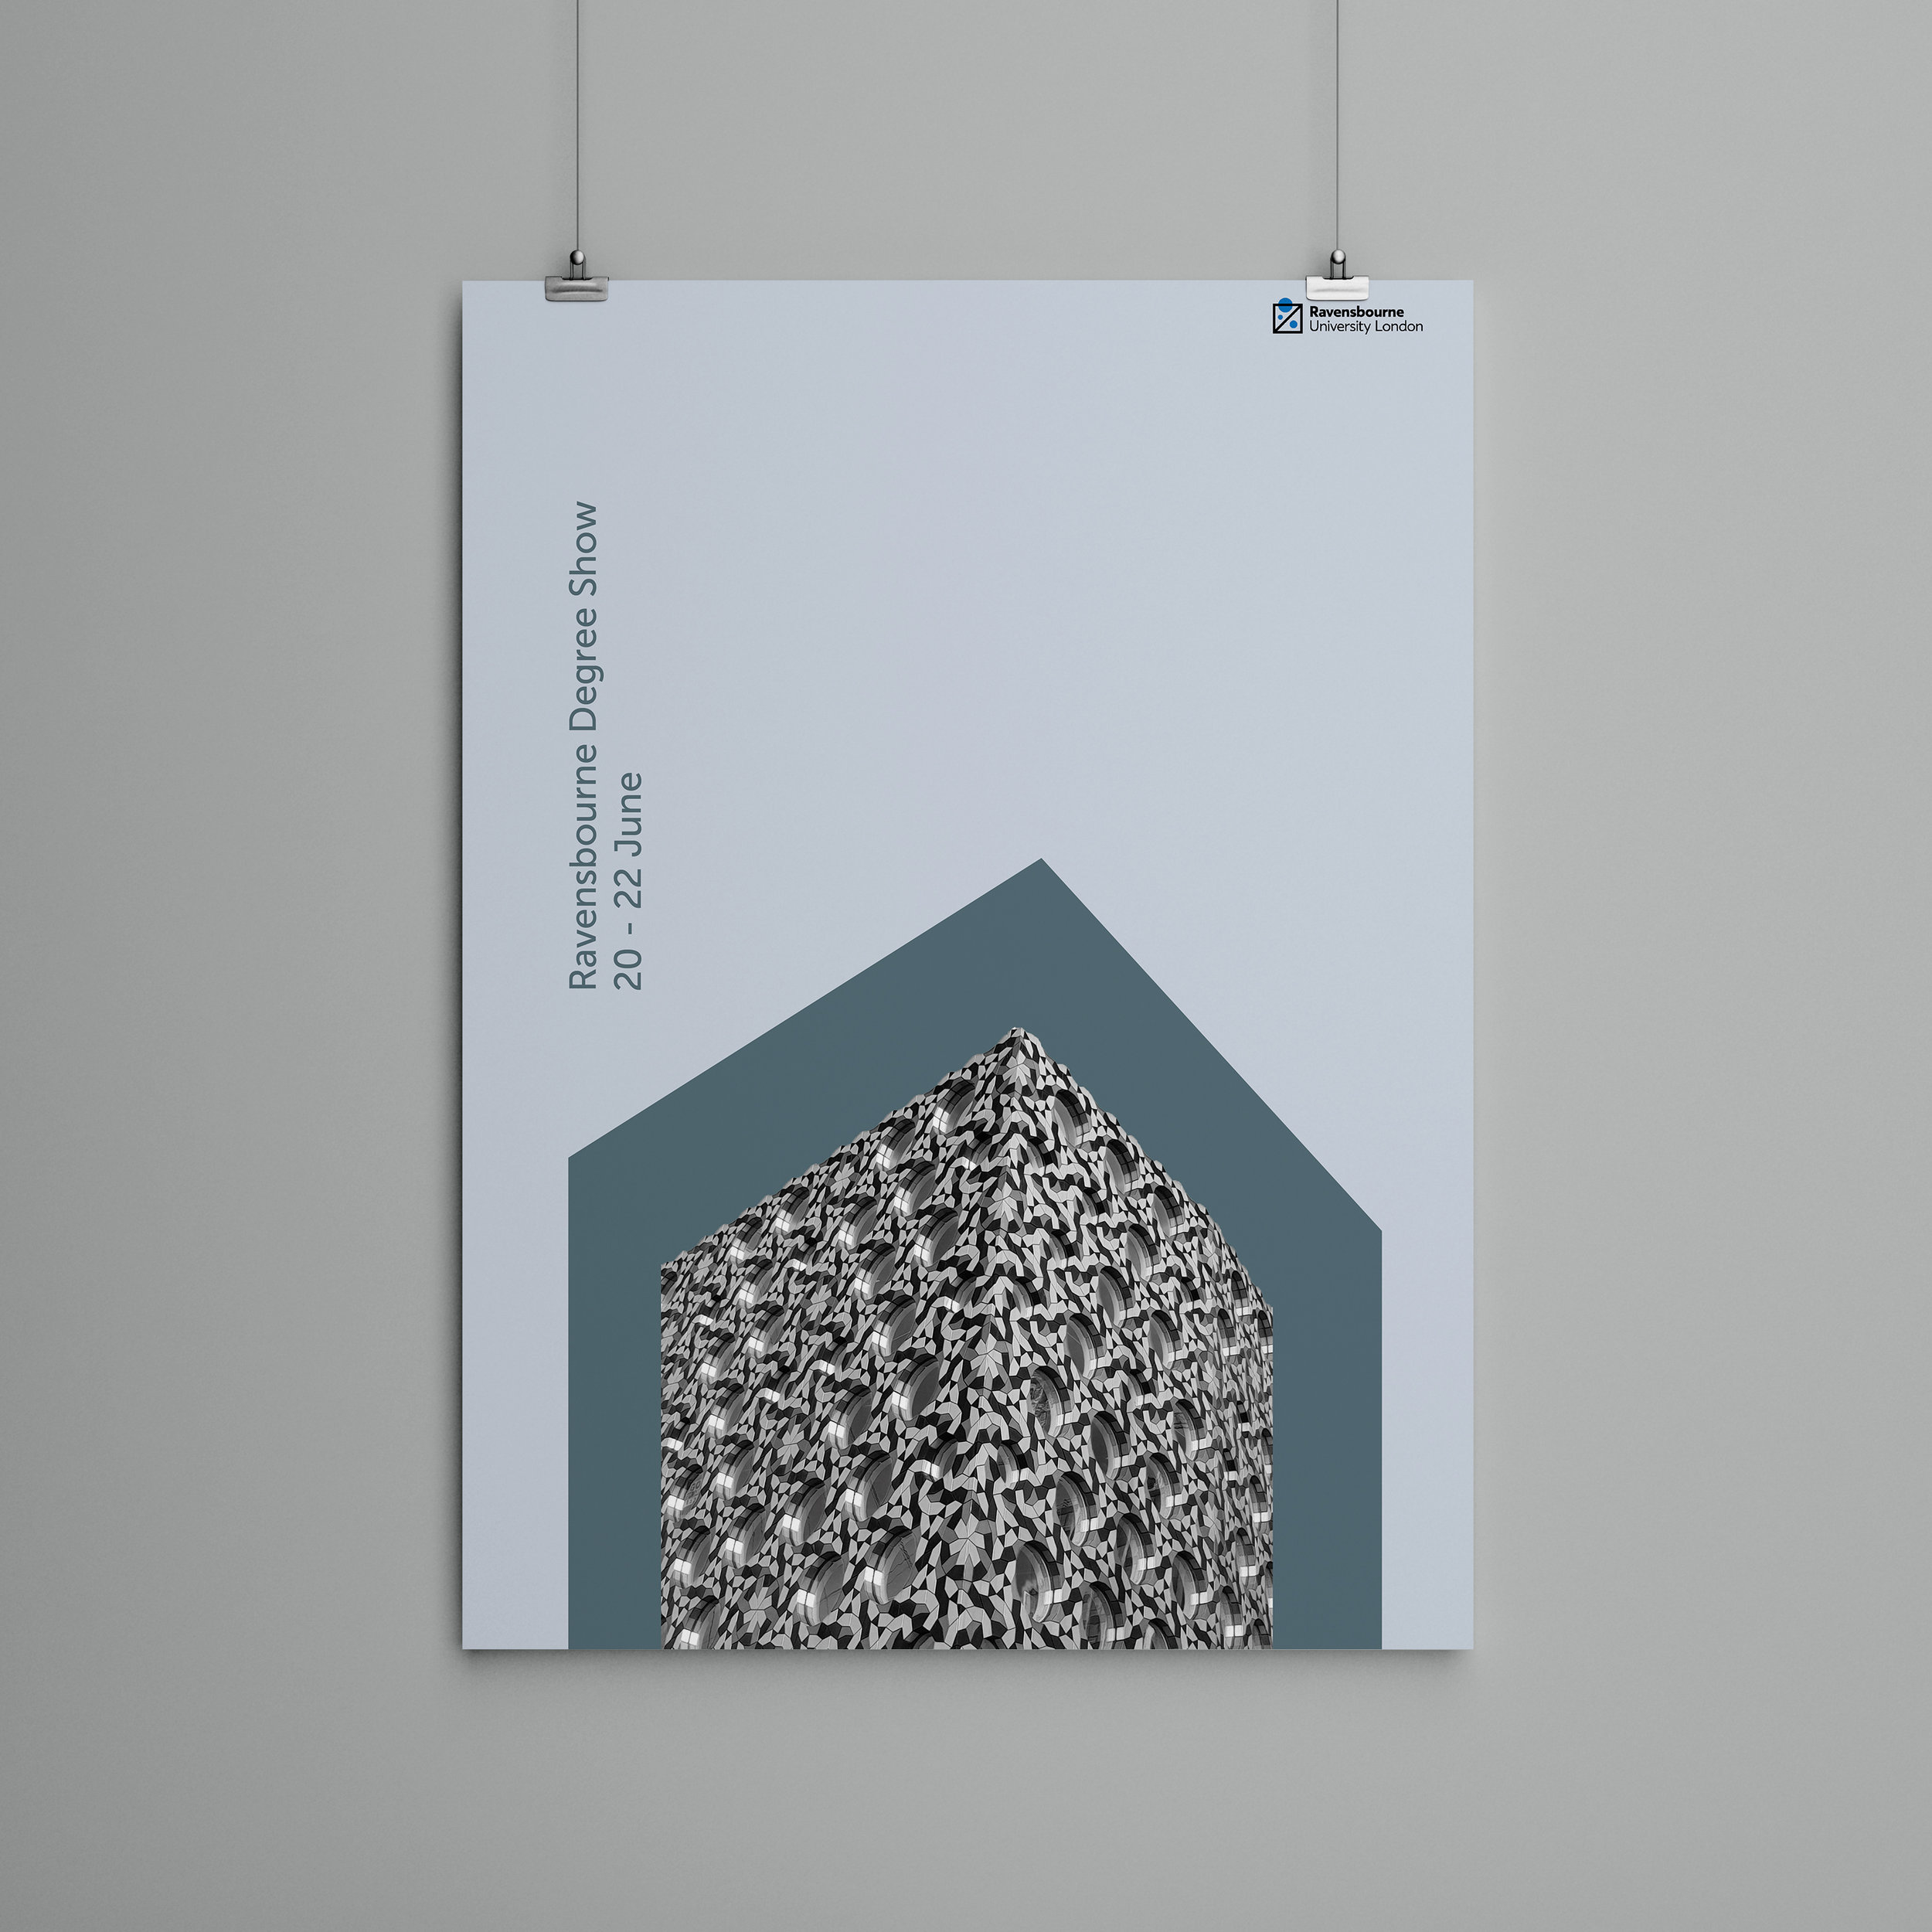 Paper Hanging With Clips Mockup For Poster Presecntation.jpg